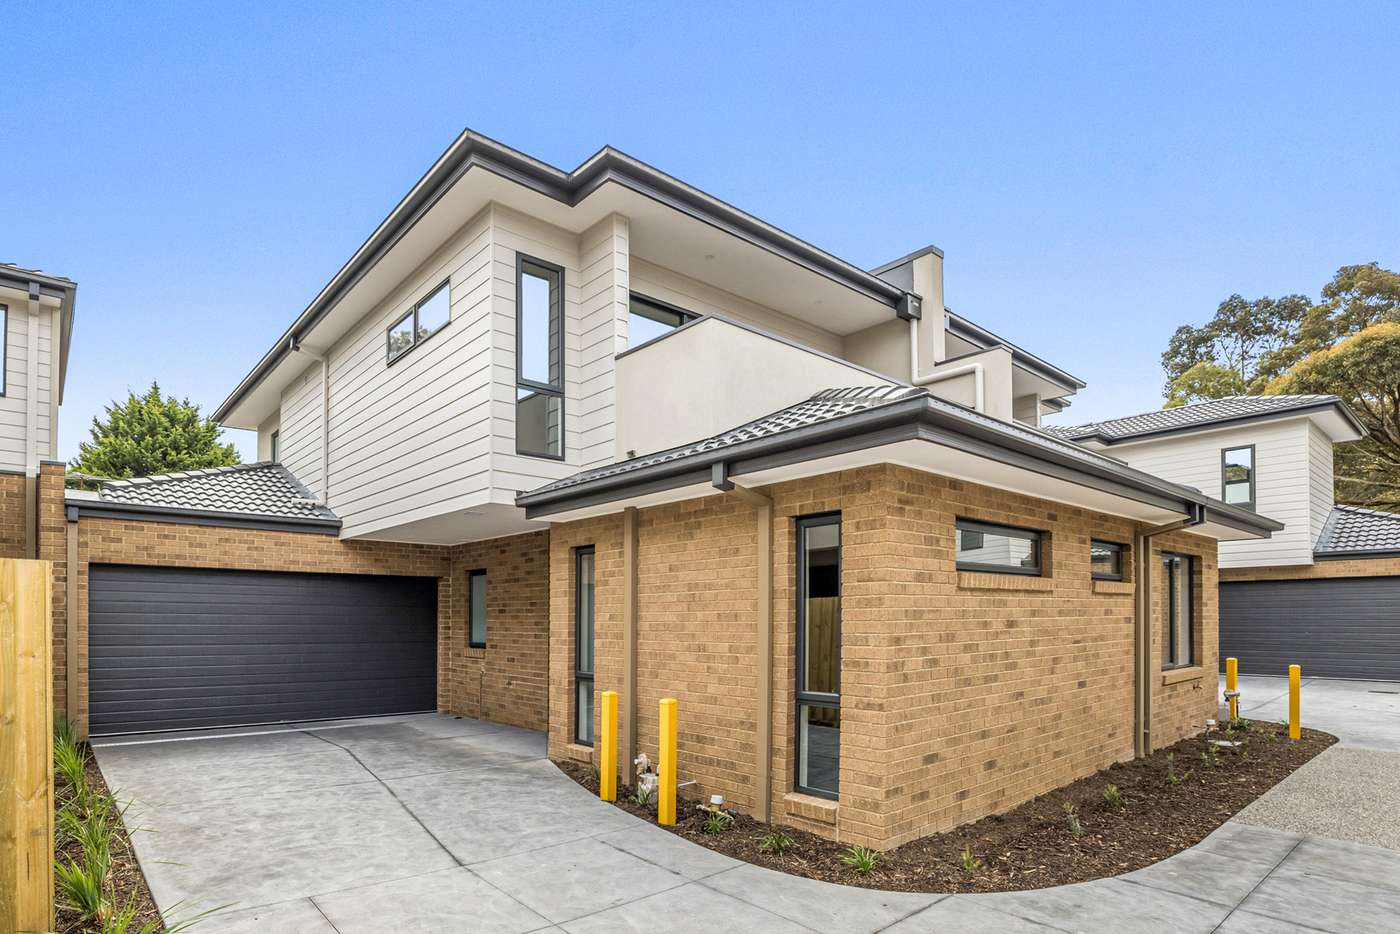 Main view of Homely townhouse listing, 1 Lexi Place, Kilsyth VIC 3137